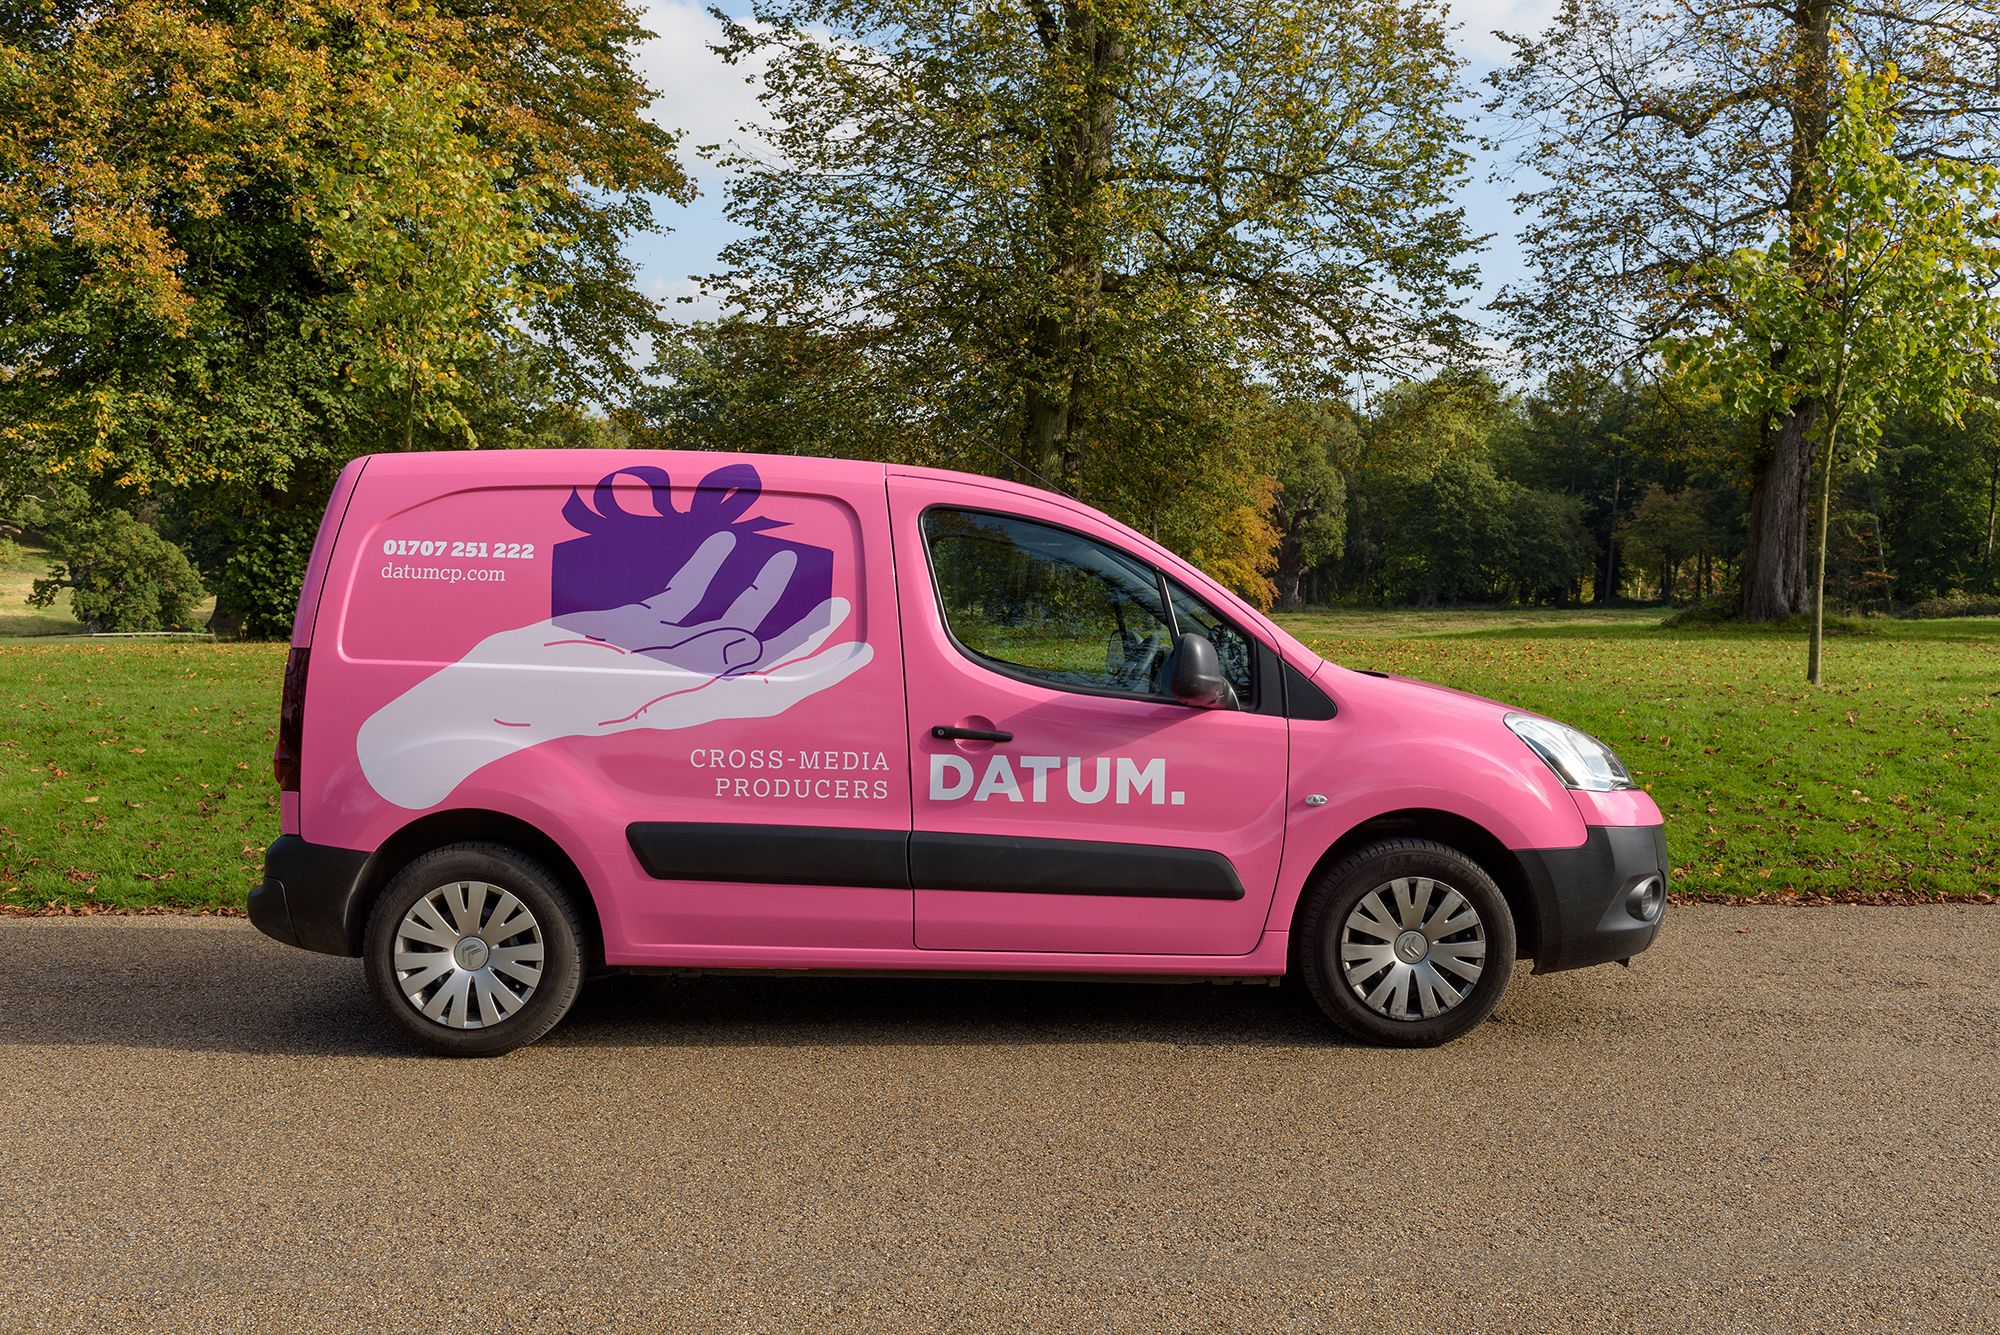 1ca45834a9 A selection of our Datum branded items which includes our vehicles ...